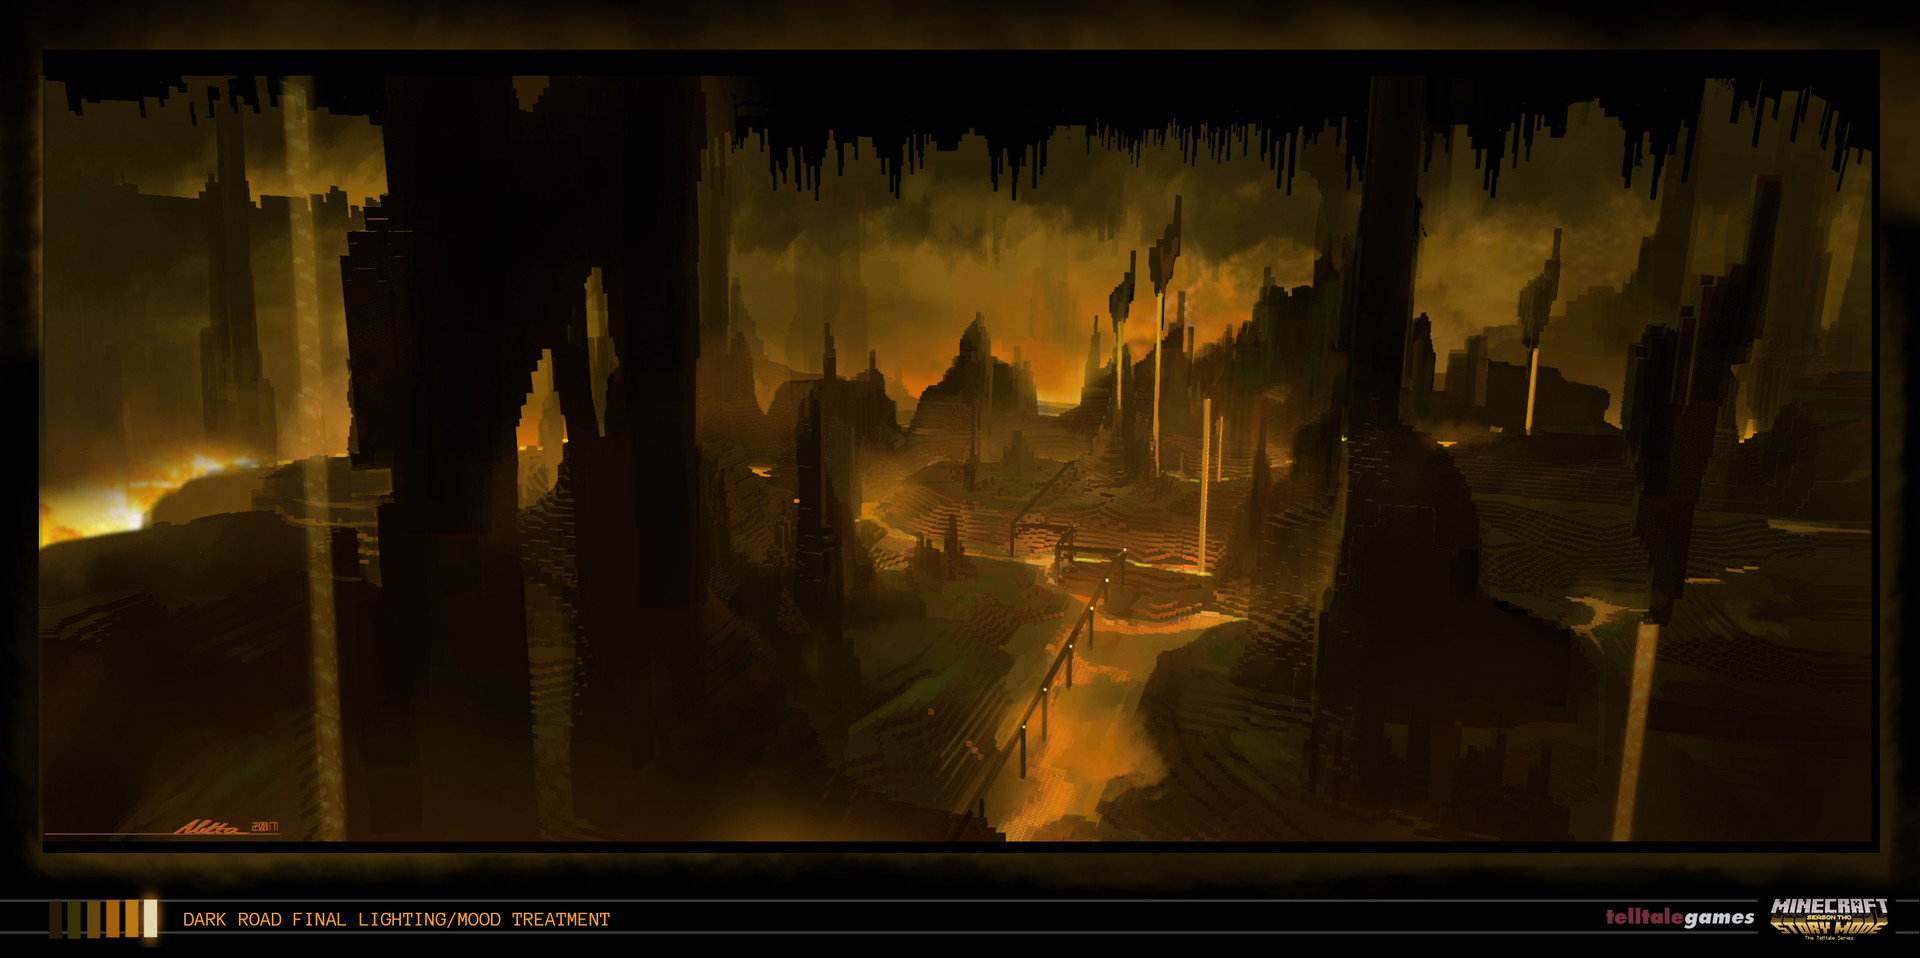 ArtStation - Concept Art and Lighting Direction from